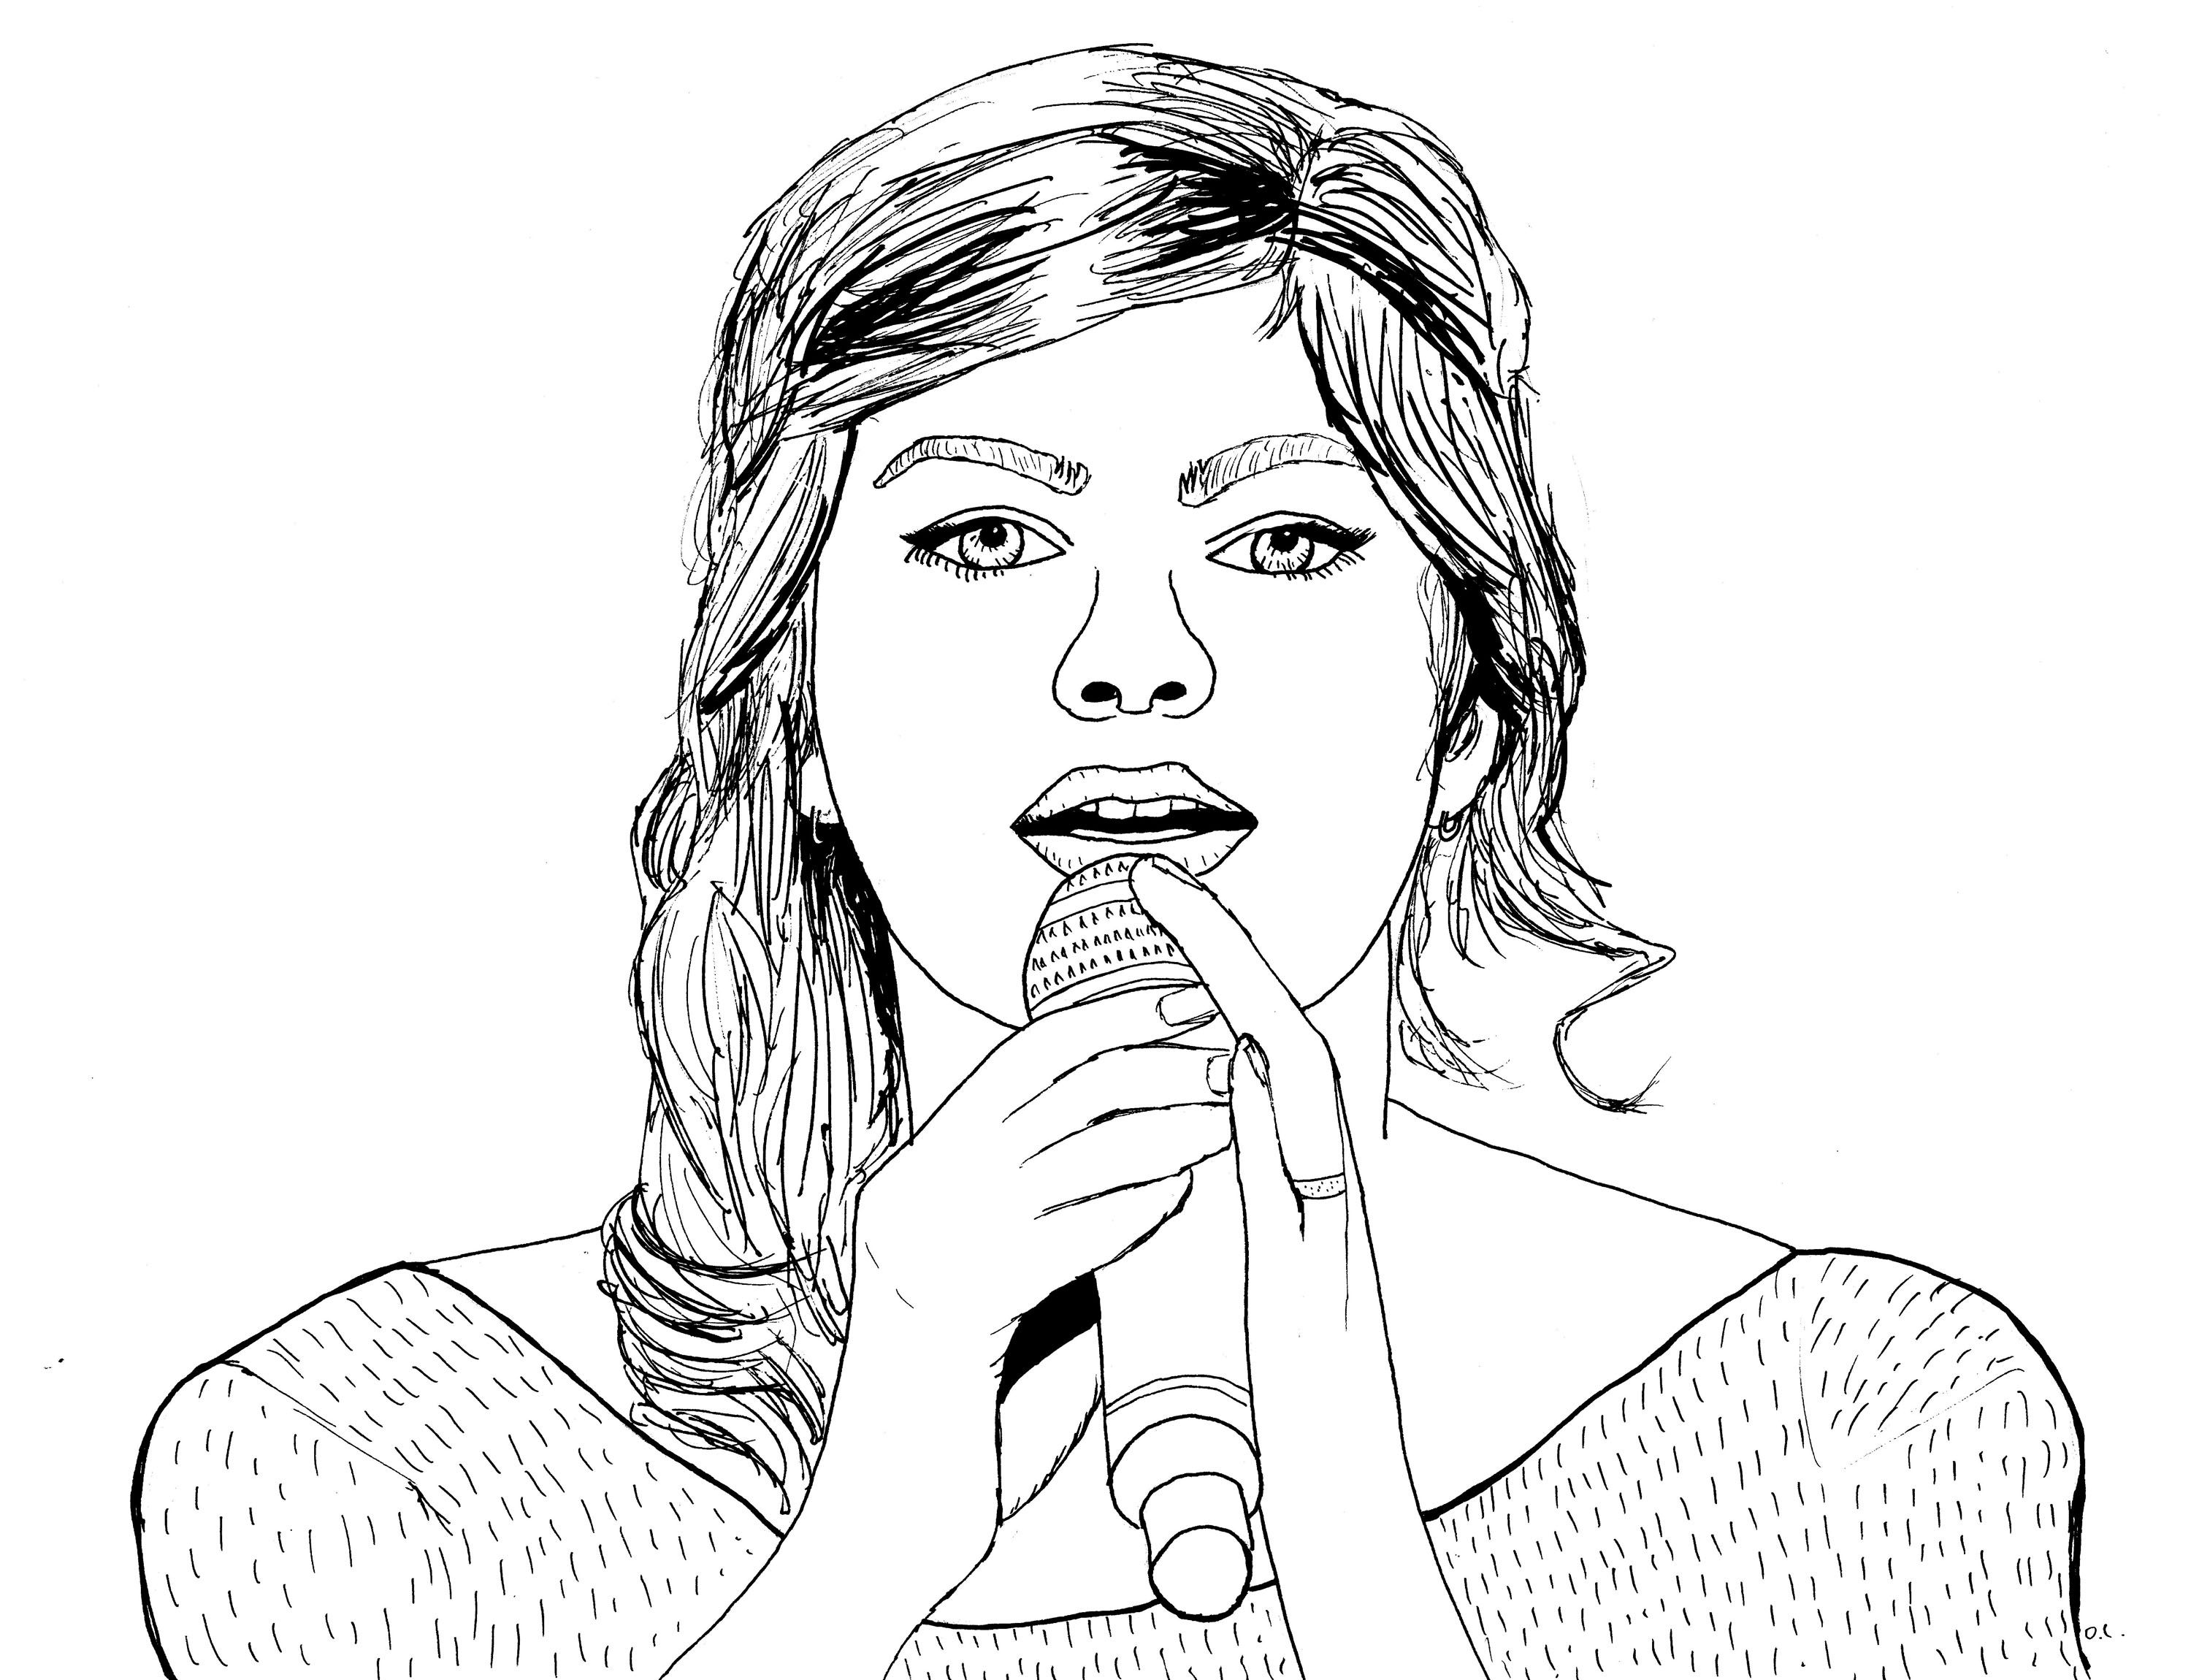 Coloriage de Louane Louane Coloring page French singer & actress by Olivier